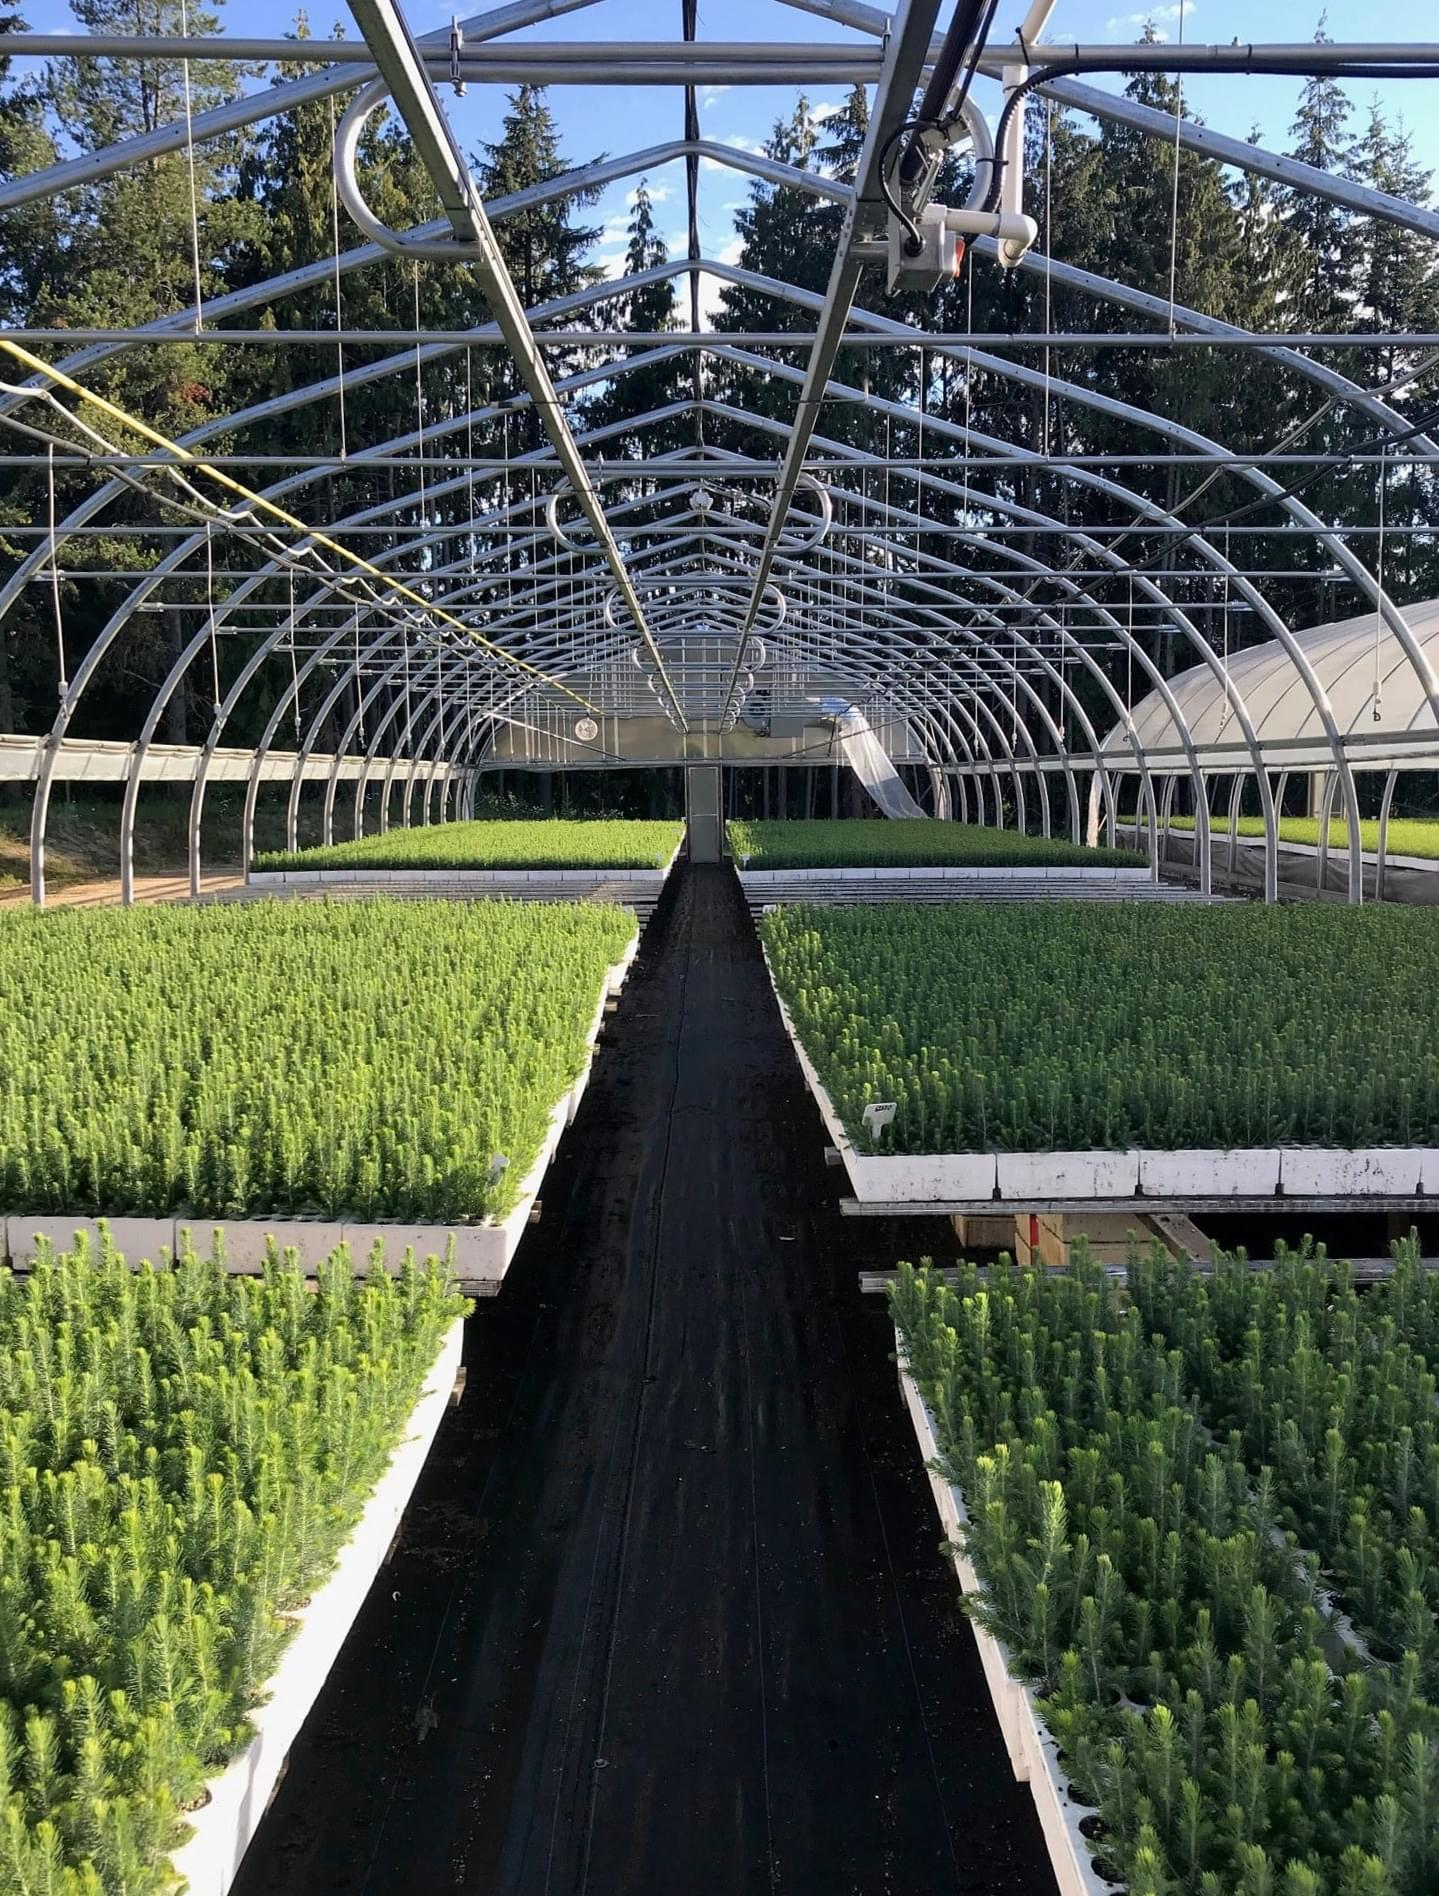 Image of Mt. Ida Nursery forestry trees greenhouse.